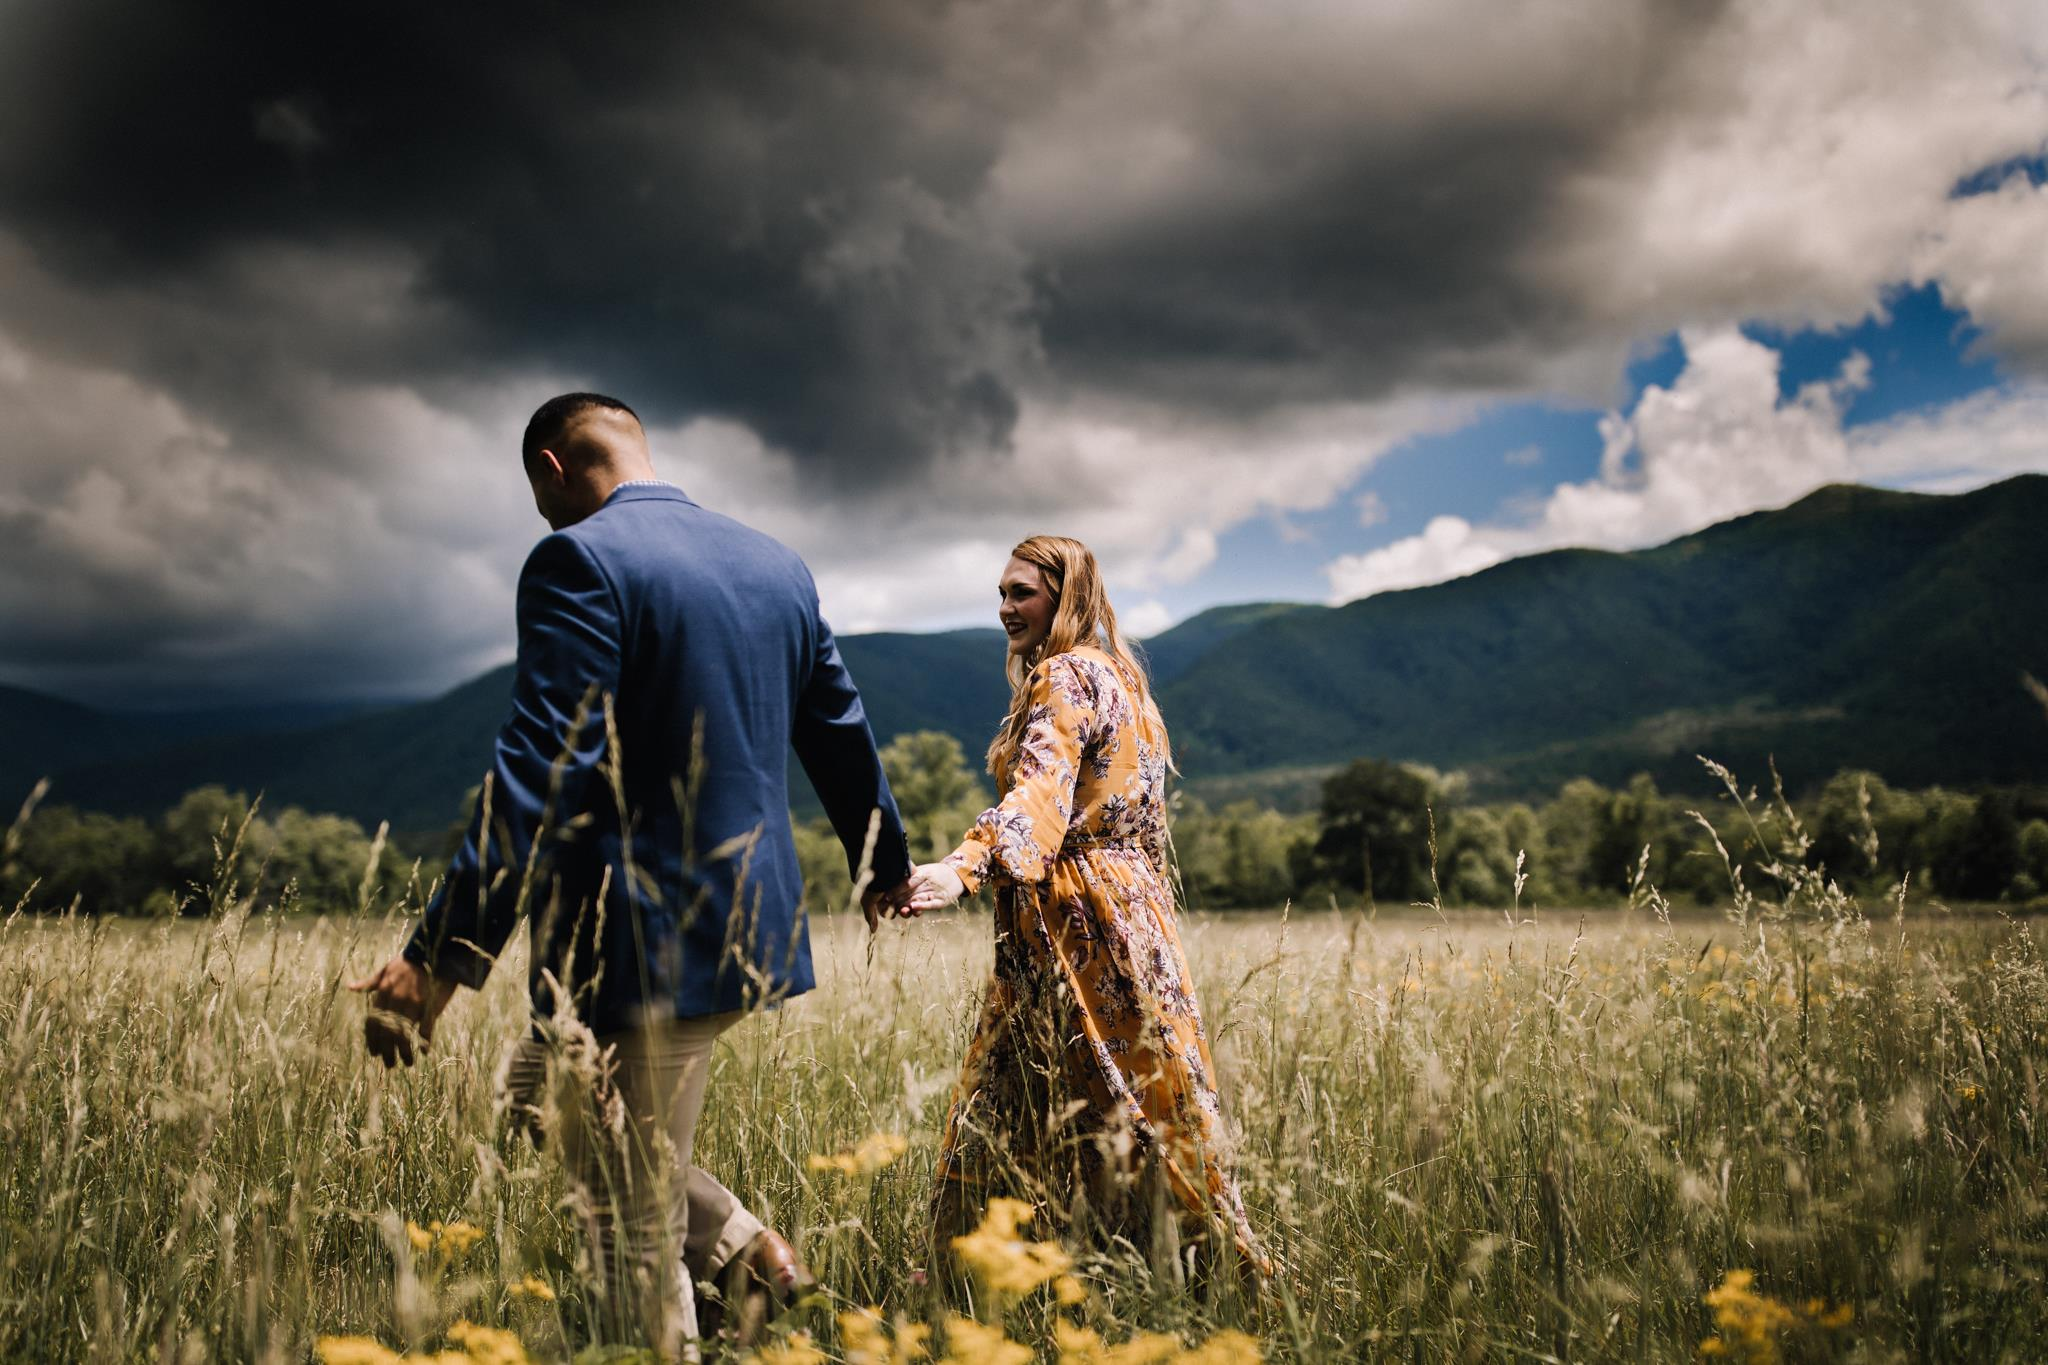 billie-shaye style photography - www.billieshayestyle.com - smokey mountain cades cove summer rain engagement session - gatlinburg tennessee-11.jpg